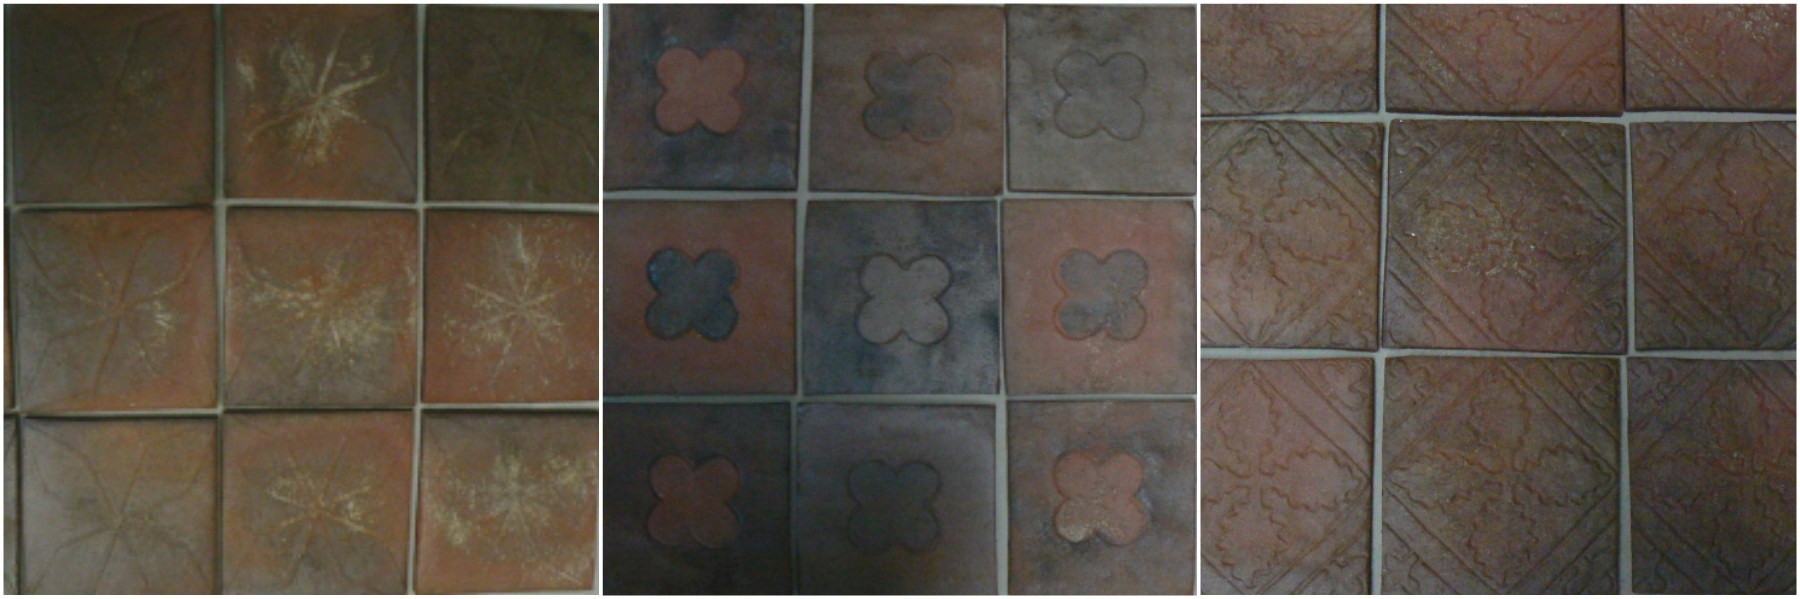 Medieval diamonds field tiles (Saxon tiles, York, UK), Chappelle de Saint Cucaphas Quatrefoils, Medieval Oak leaf tiles from Acton Burnell parish -- tiles from Inglenook tile design